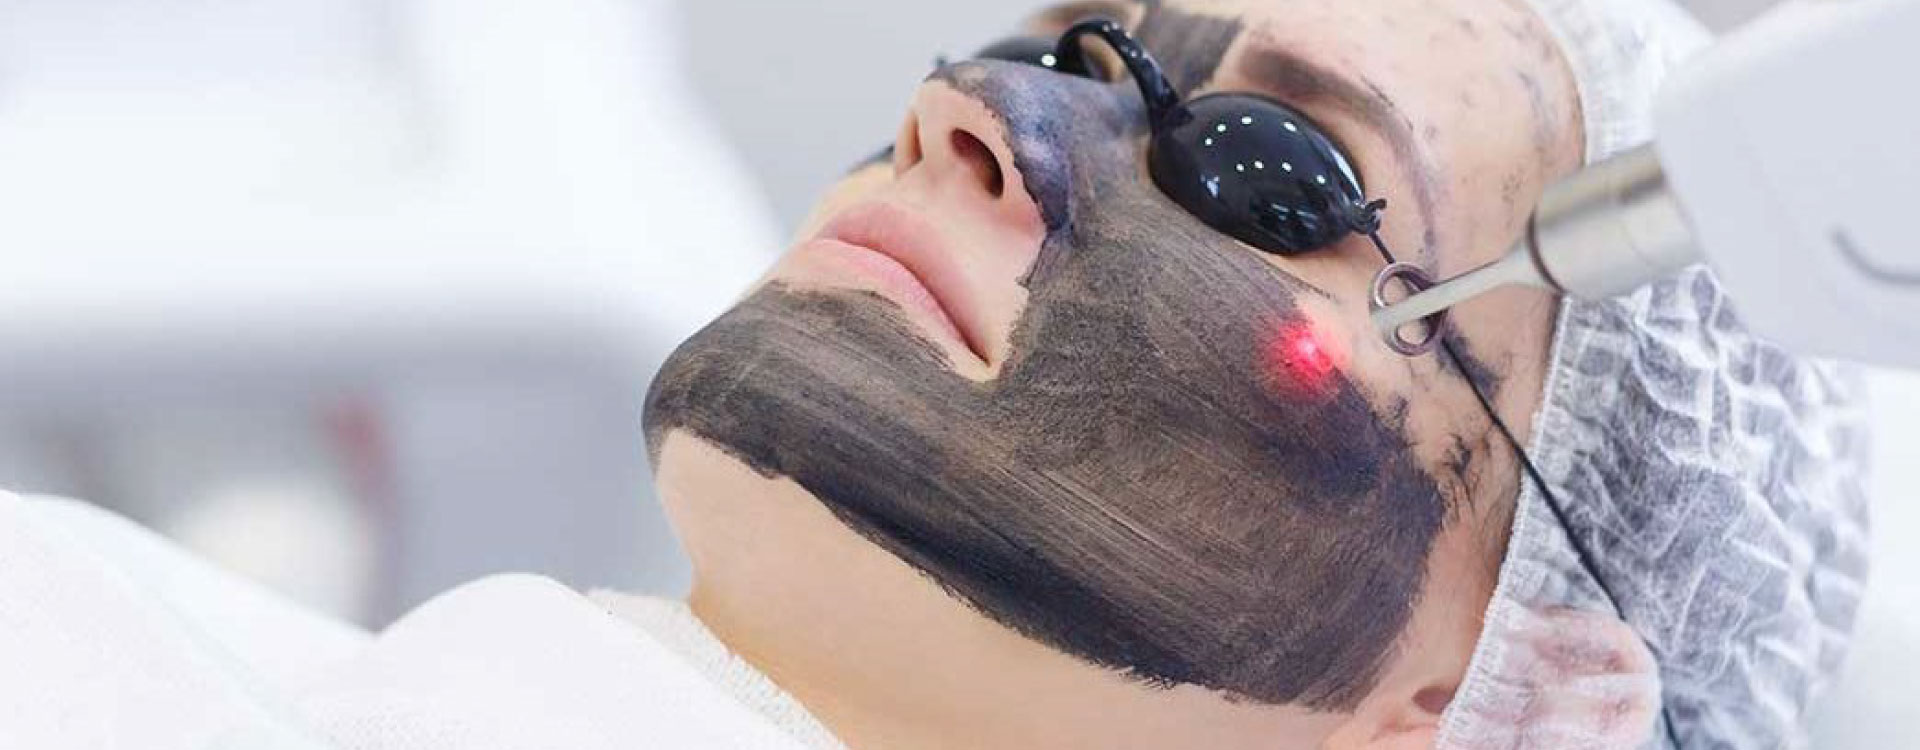 Skin lightening with carbon laser technology - Skin and Teeth Medical Center - Ajman - UAE